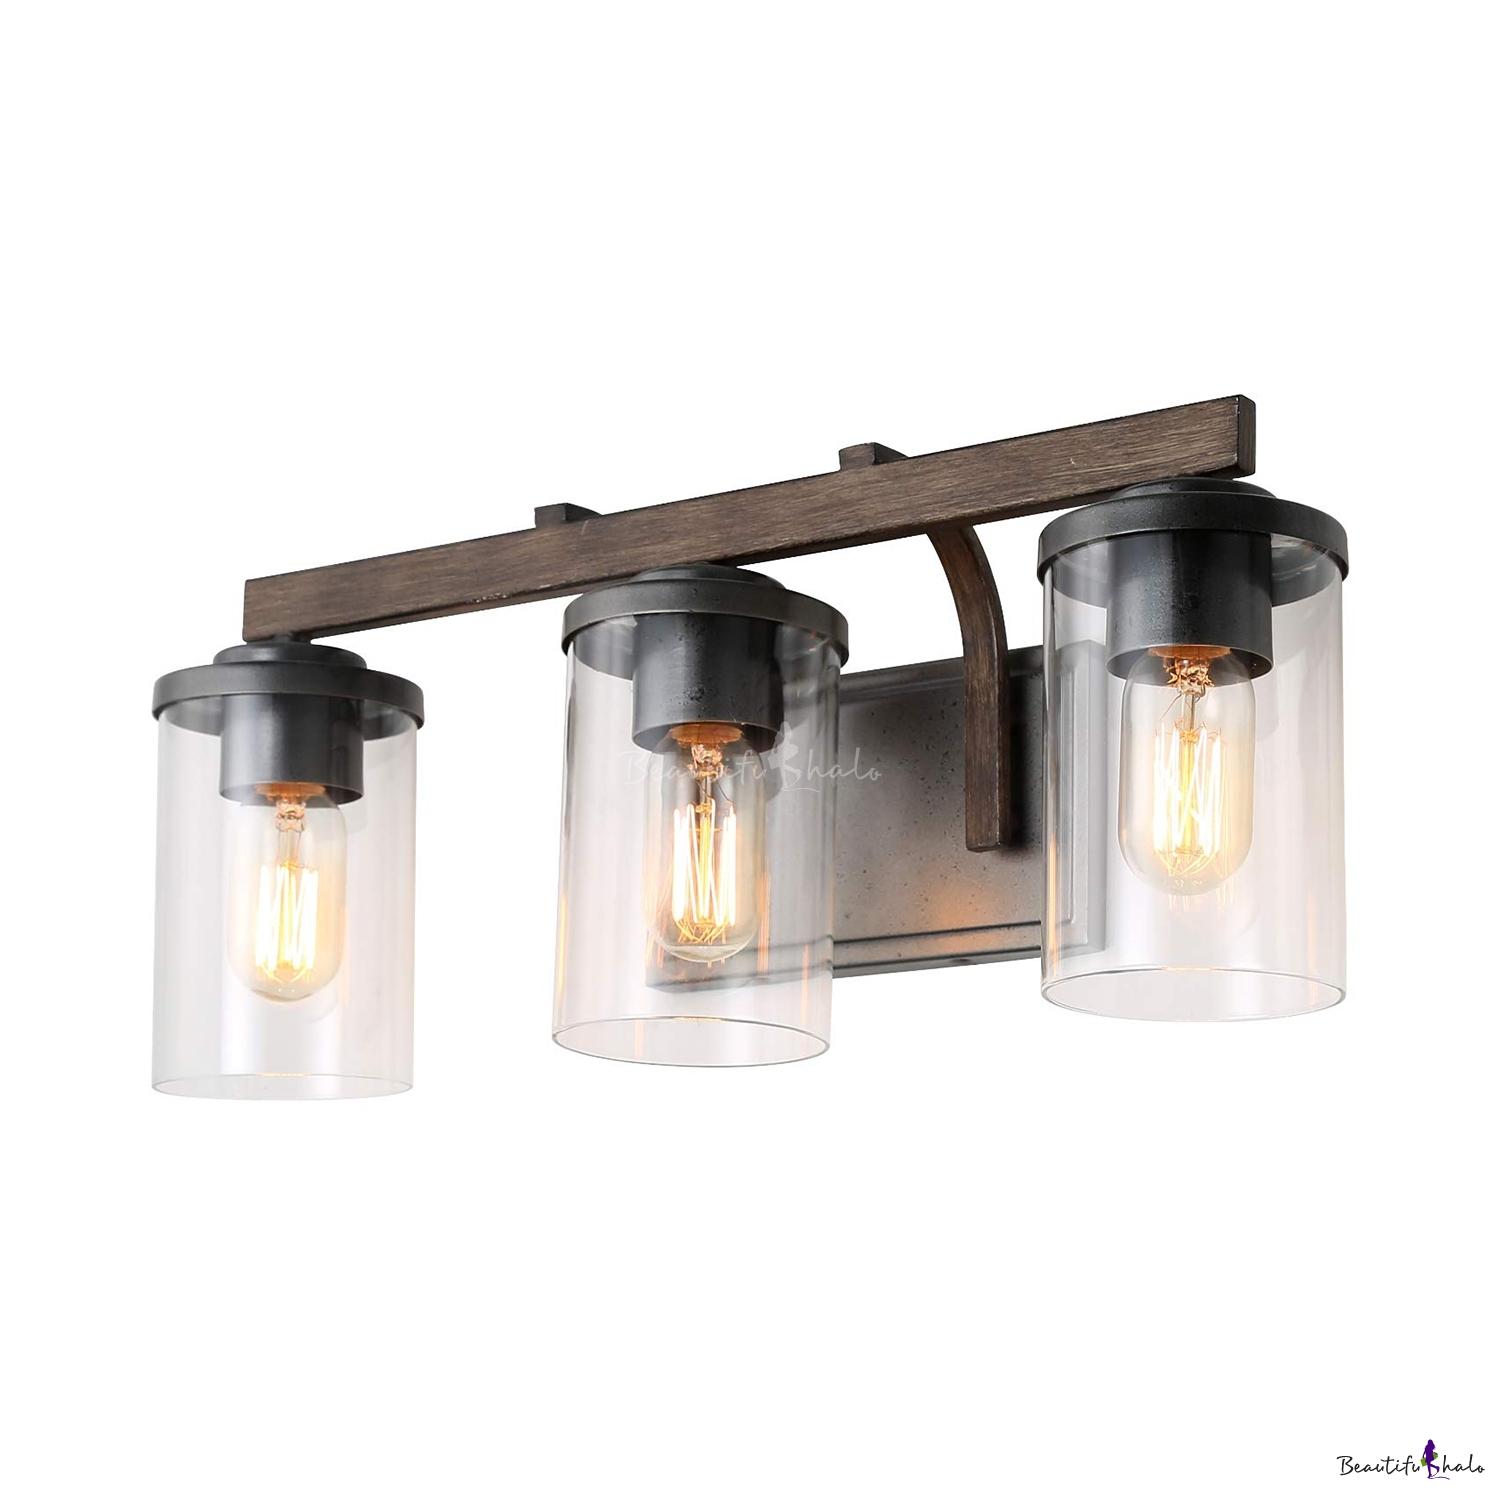 Brilliant Industrial Sconce Wall Light With Cylinder Shade 3 Lights Clear Glass Wall Light For Bathroom Mirror Beutiful Home Inspiration Xortanetmahrainfo